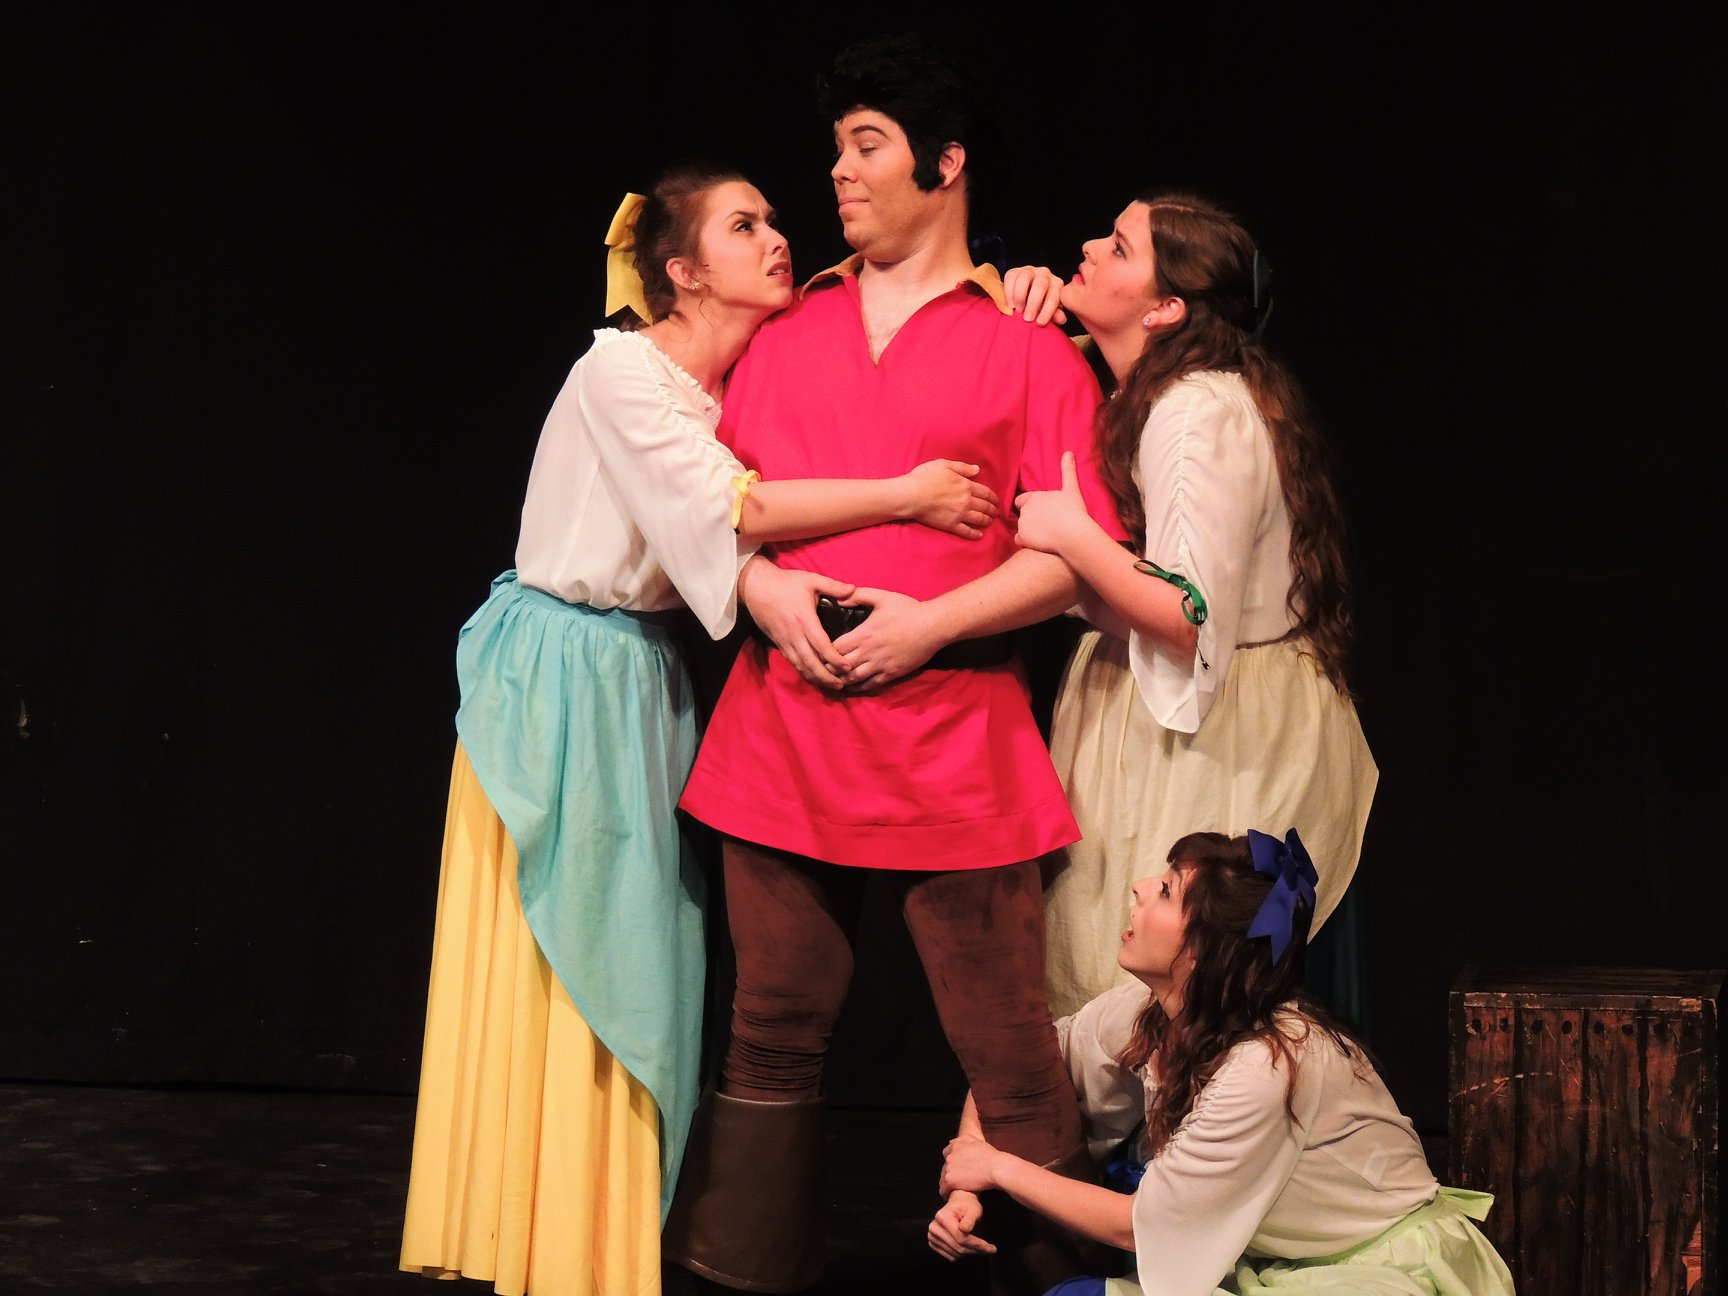 Gaston and the Silly Girls